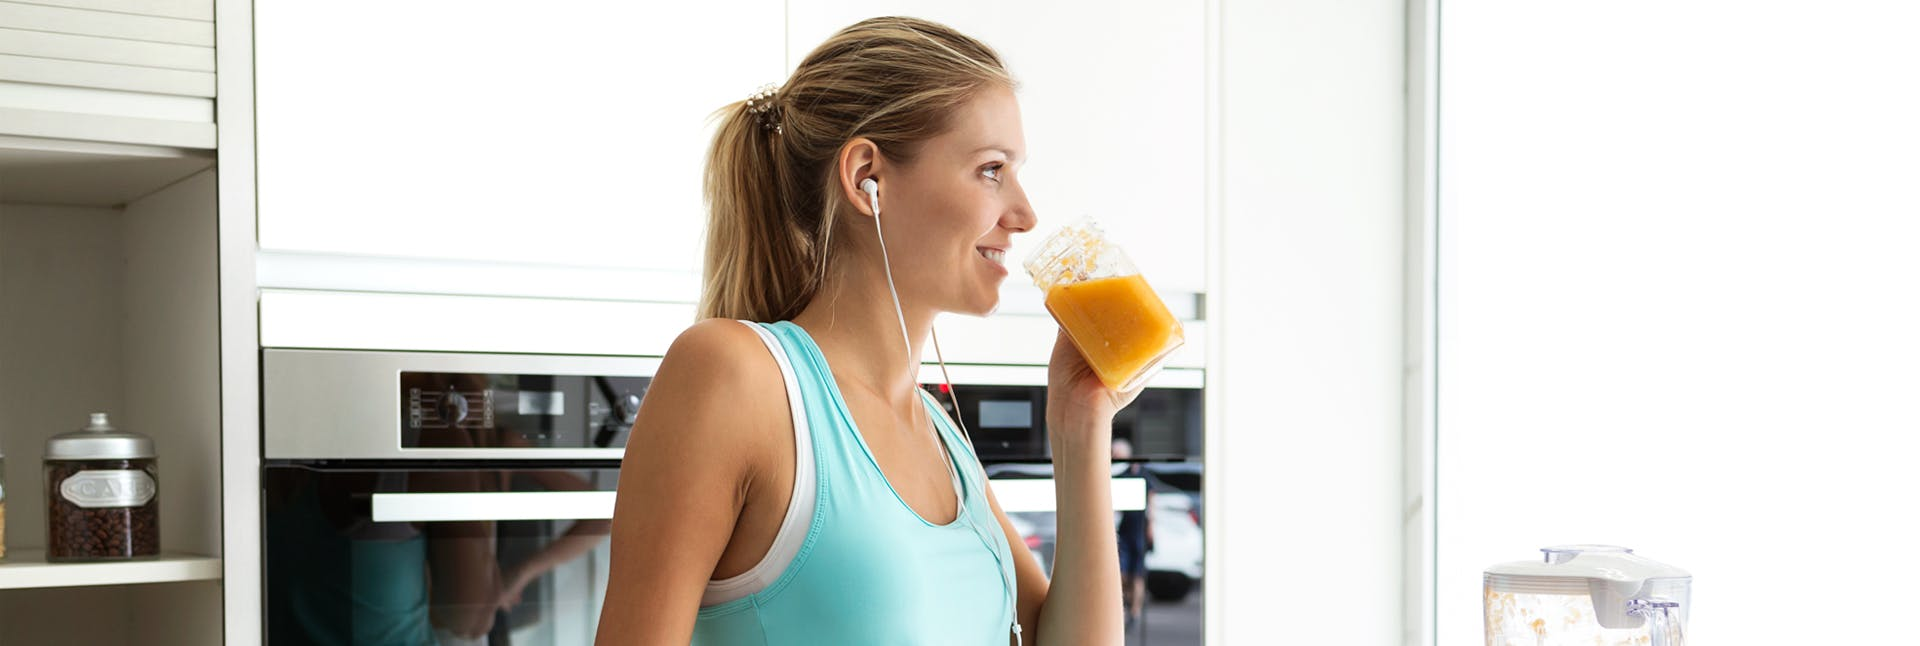 Athletic woman drinking a smoothie and listening to music